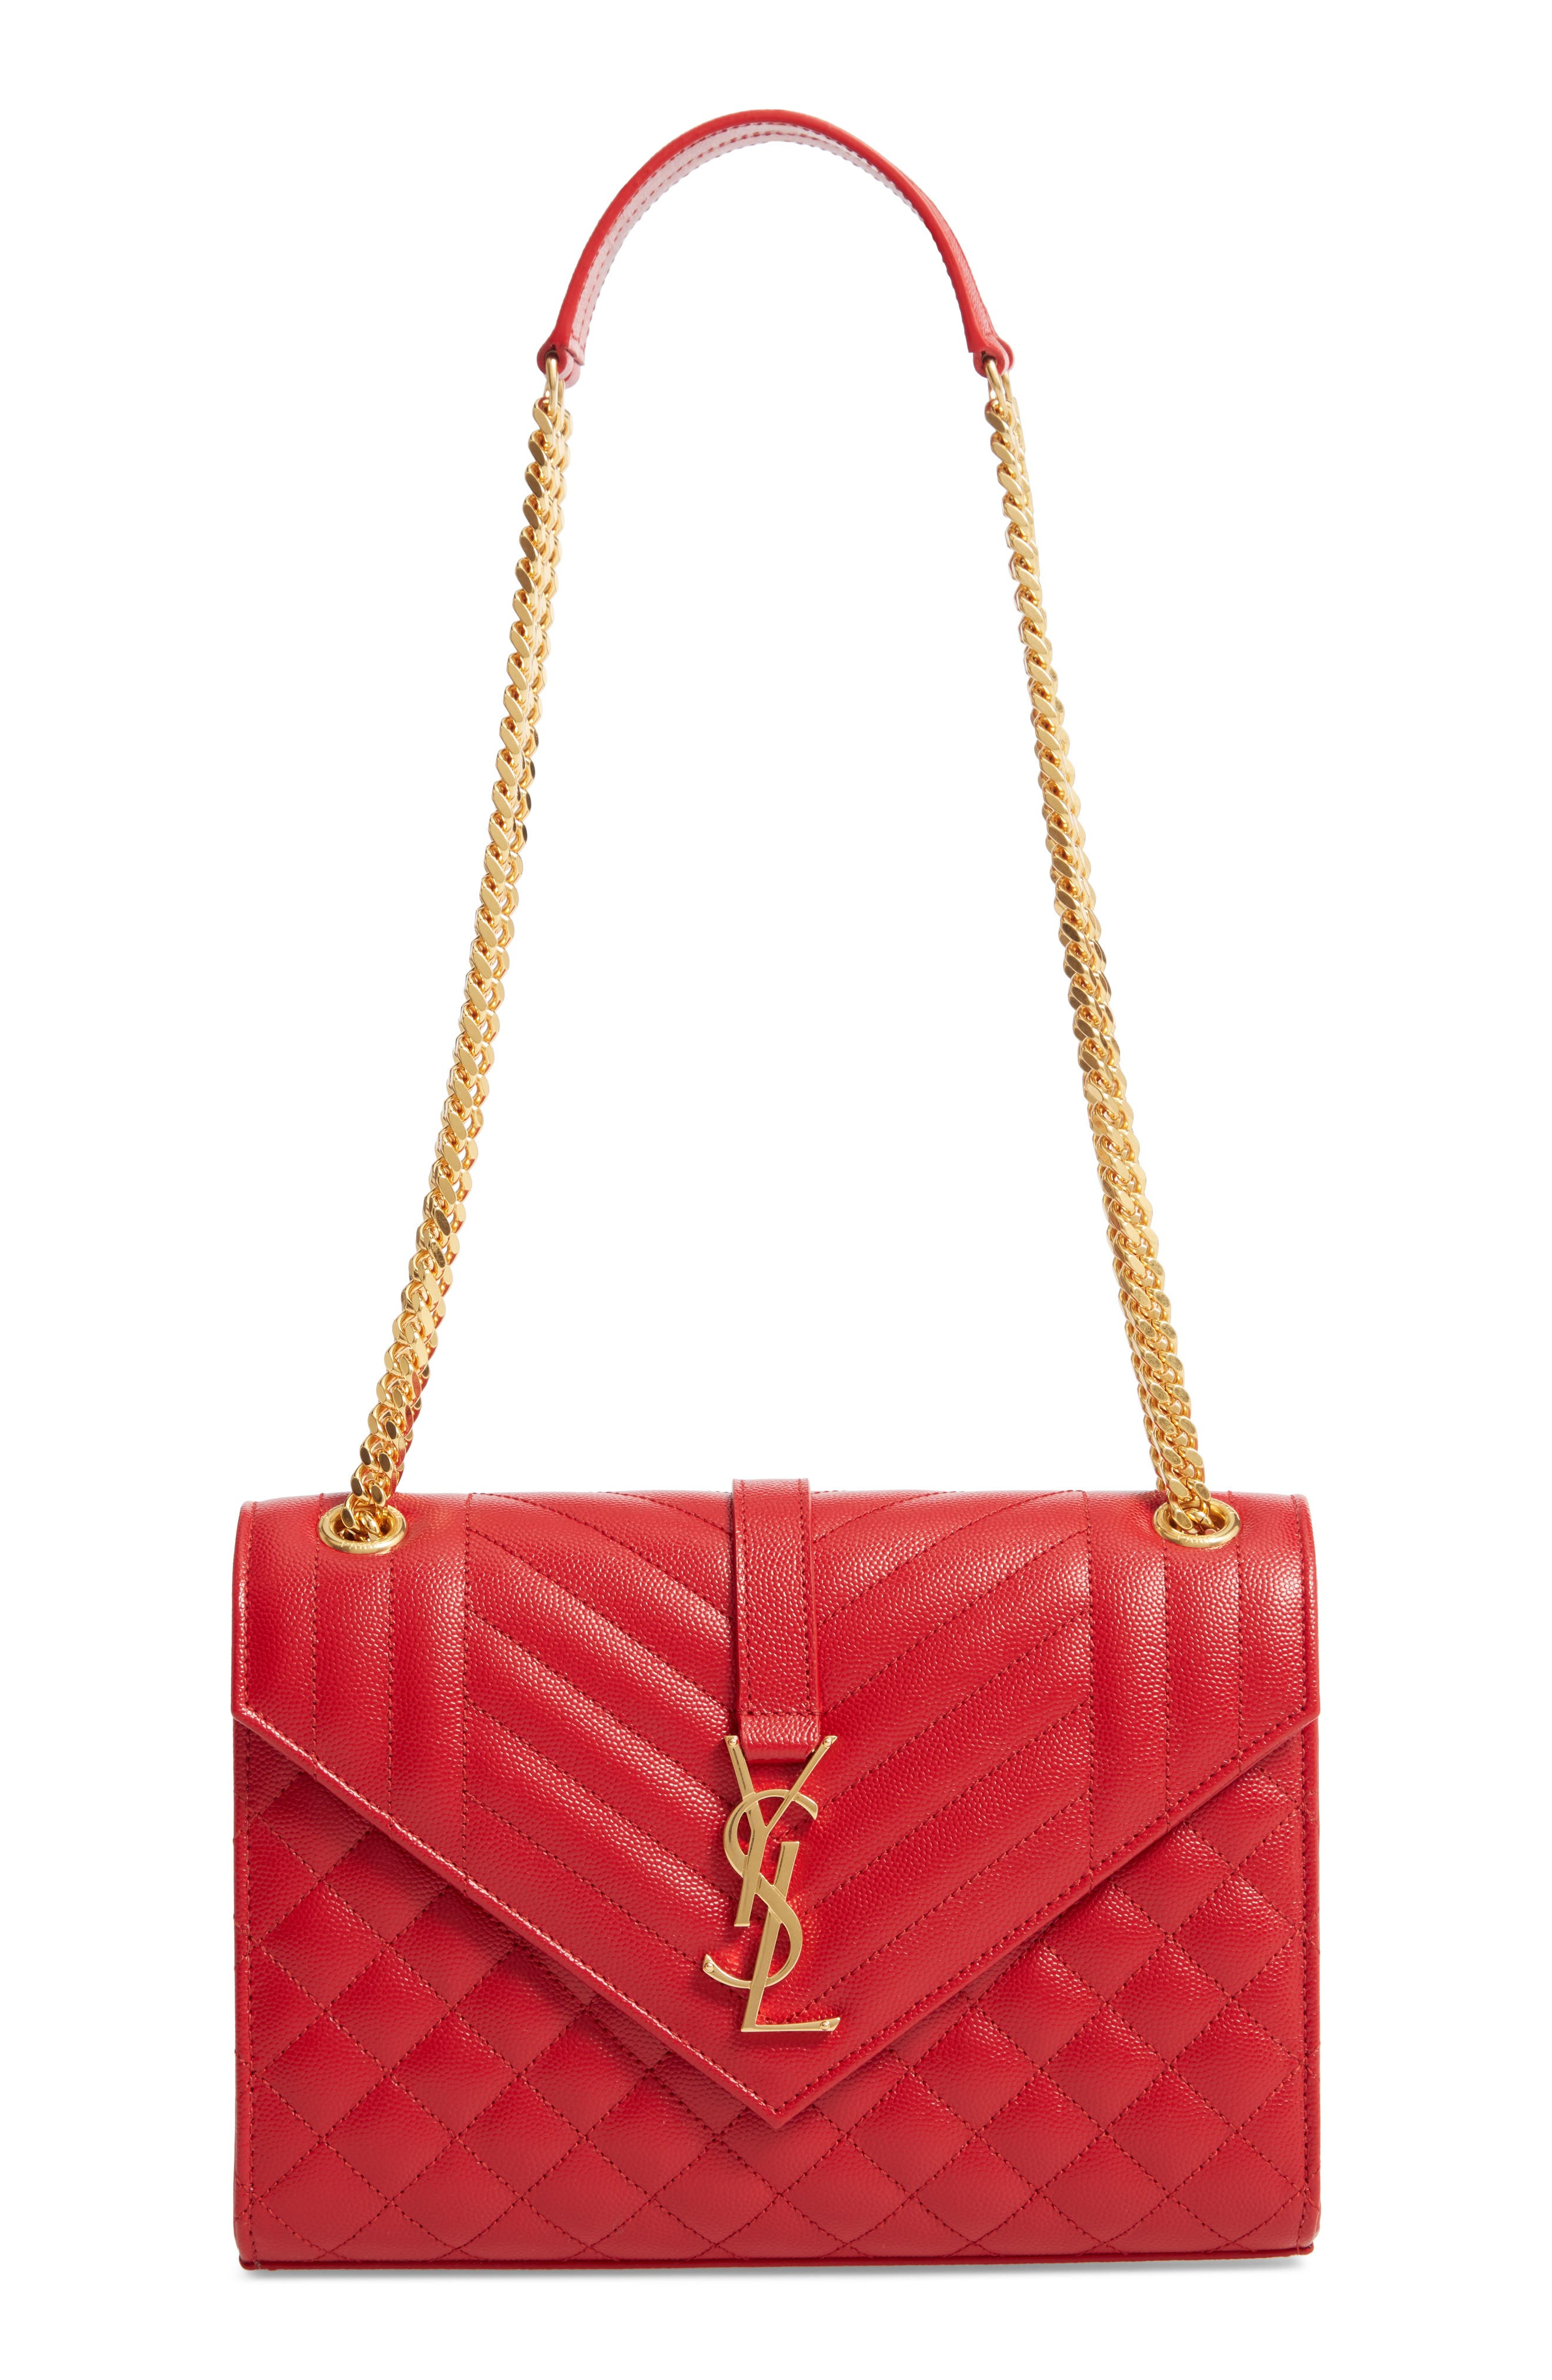 Medium Cassandre Calfskin Shoulder Bag,                         Main,                         color, BANDANA RED